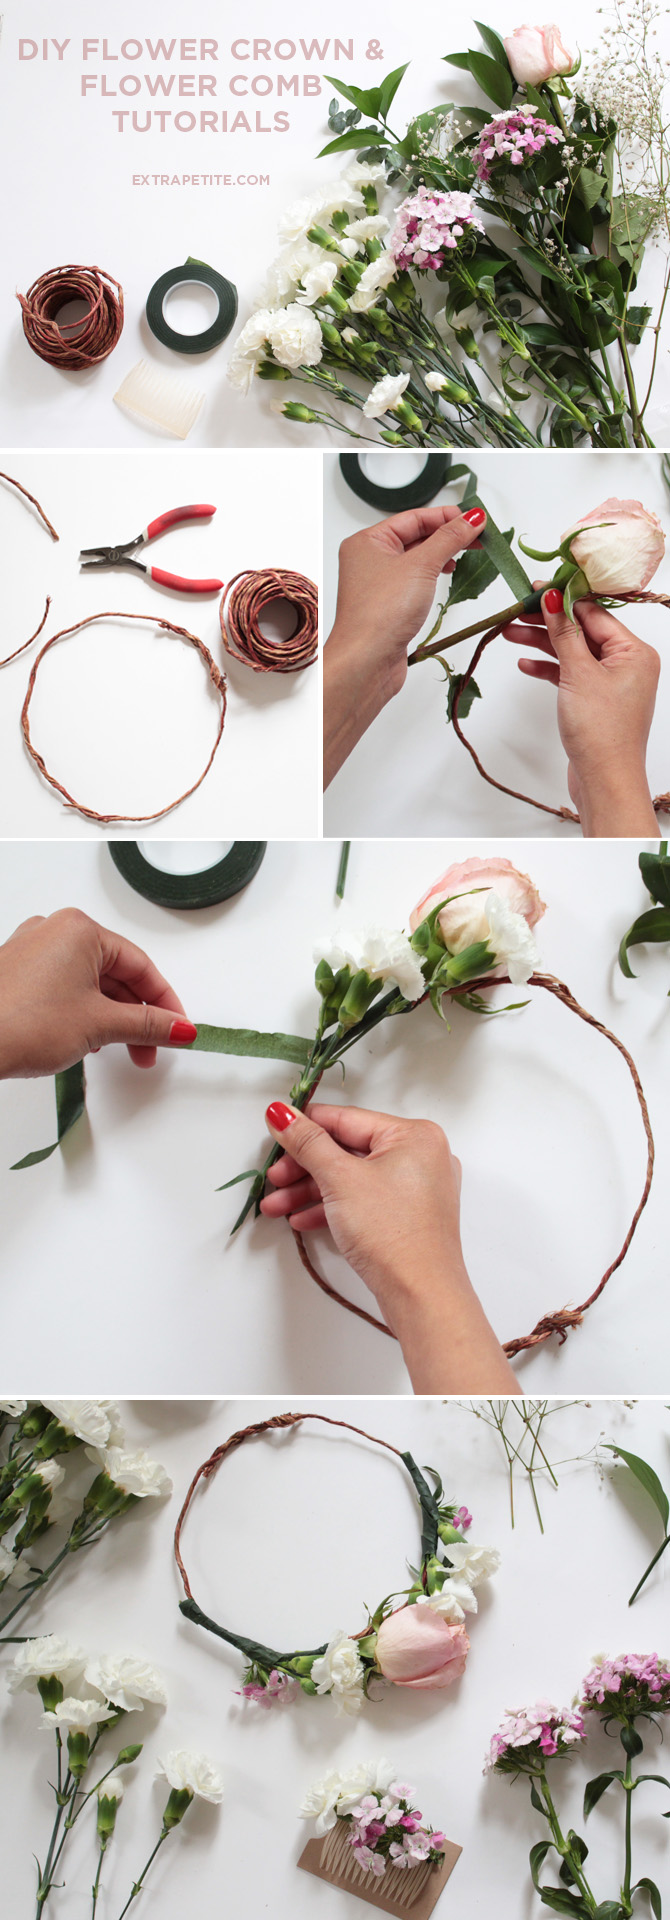 Flower crown comb diy tutorial bridal shower activity extra petite diy flower crown floral comb tutorial bridal izmirmasajfo Images